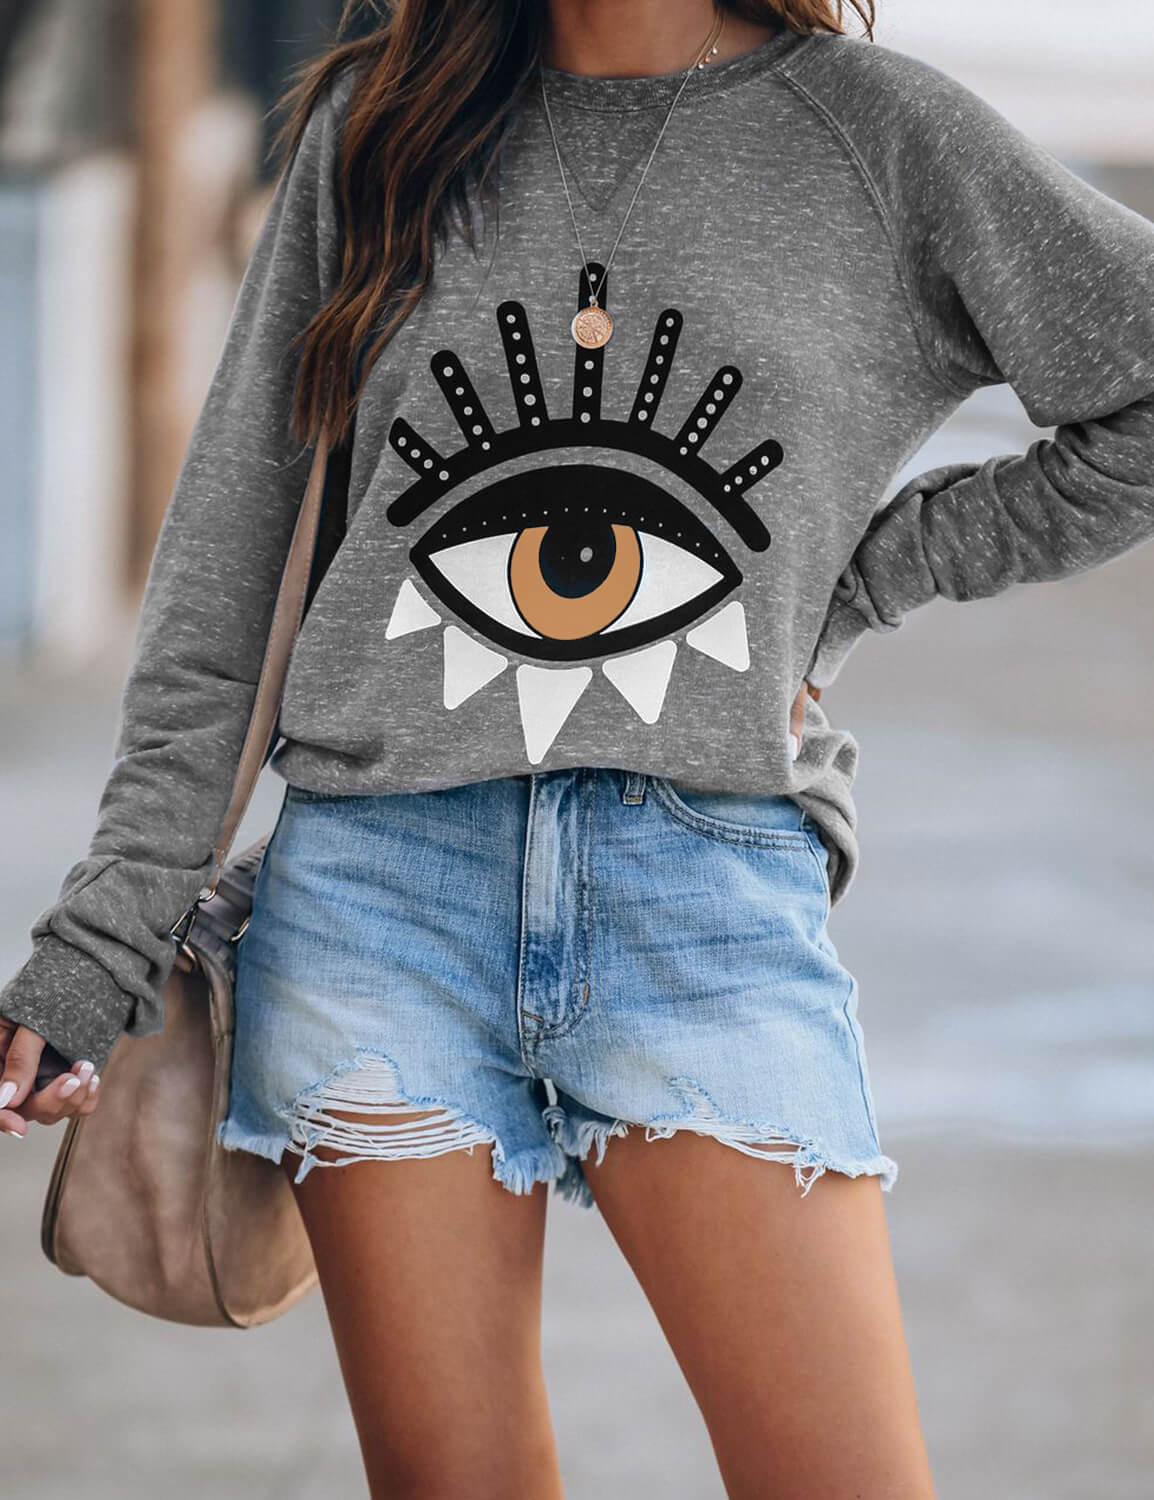 Blooming Jelly_Fun Eye Print Graphic Sweatshirt_Eye Print_305087_08_Young Style Women Outfits_Tops_Sweatshirt